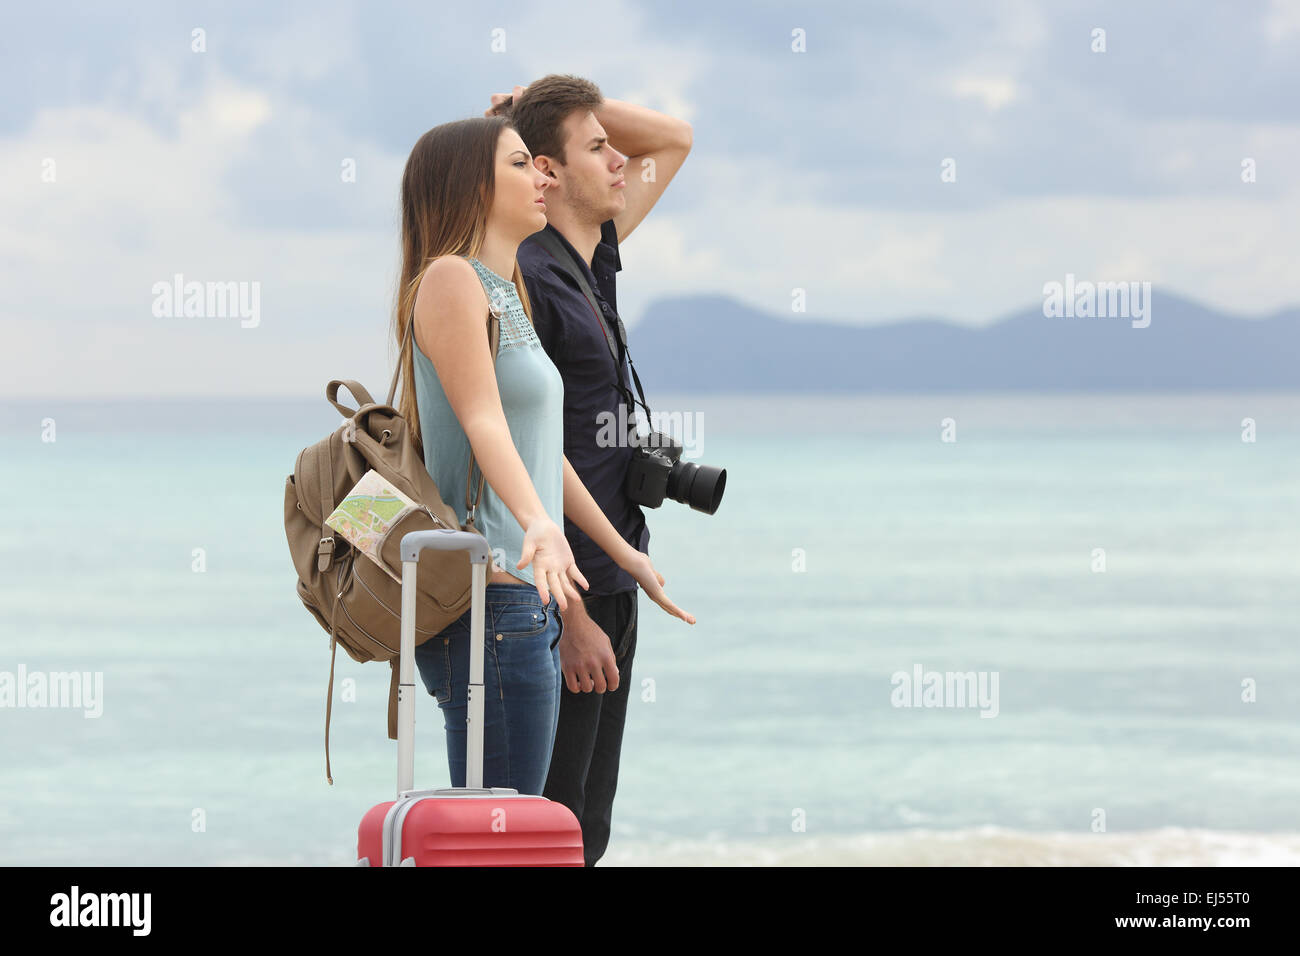 Tourists frustrated with the bad weather when arrive to the beach with the cloudy sky in the background - Stock Image